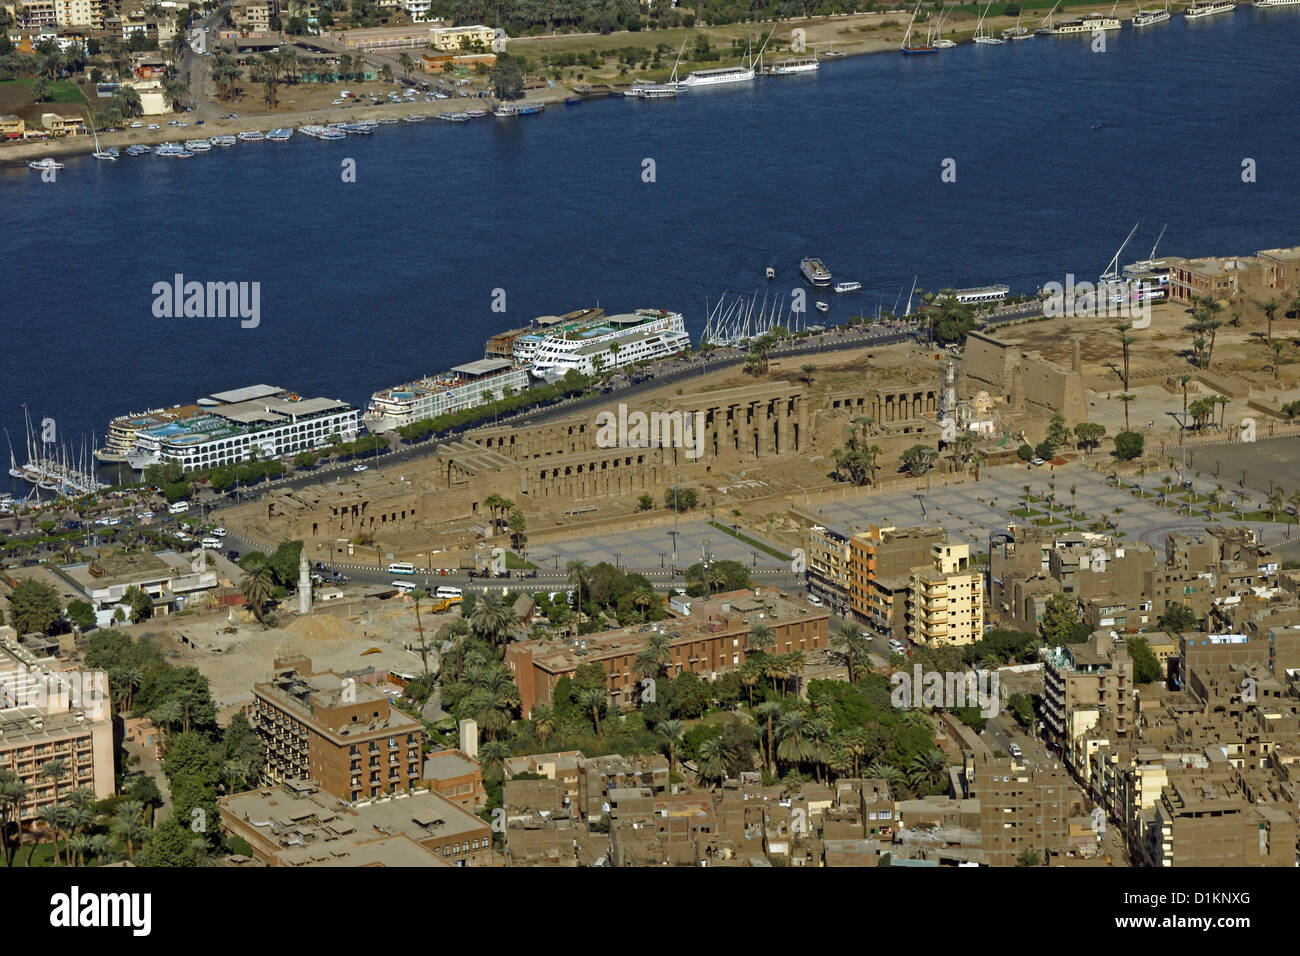 Egypt Luxor Temple Nile River Valley From The Air West Bank Stock Photo